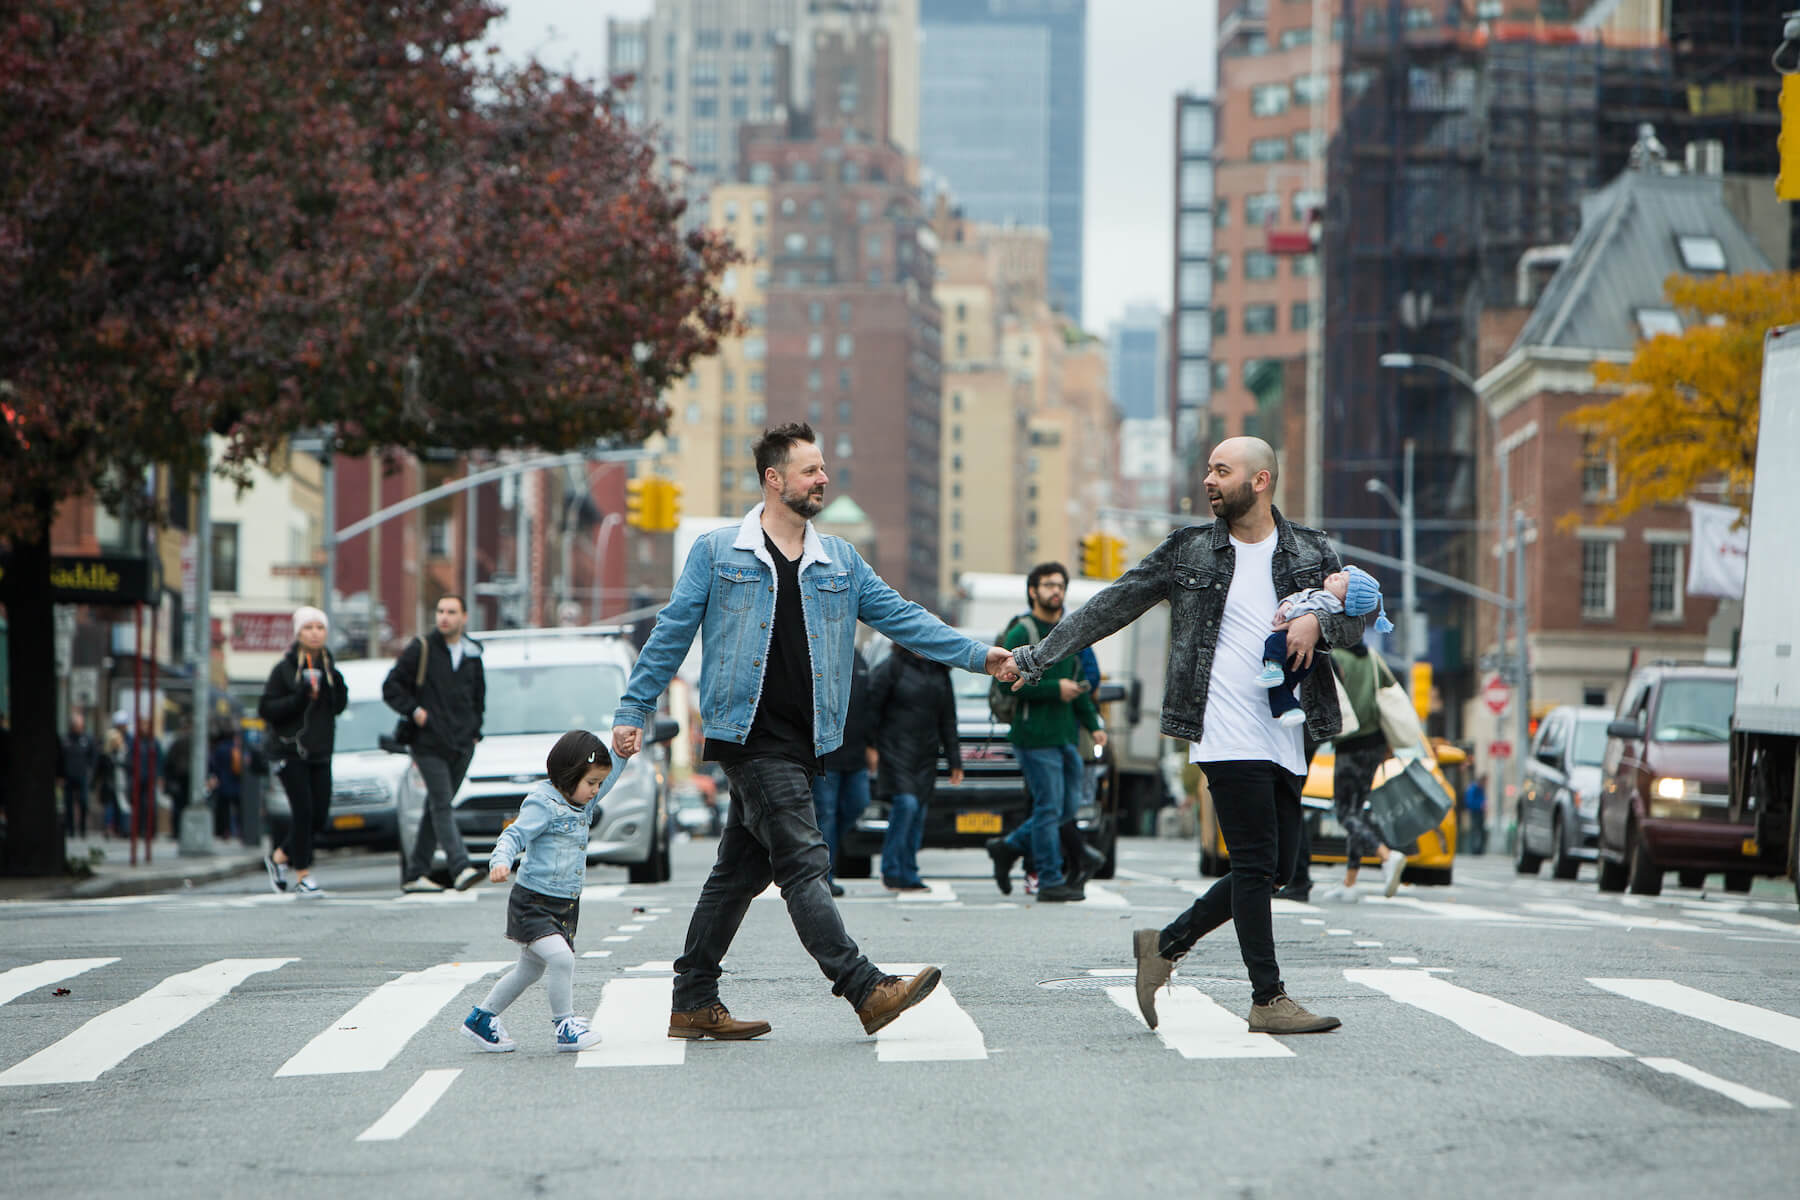 Gay Family Hometown Photo Shoot in New York City